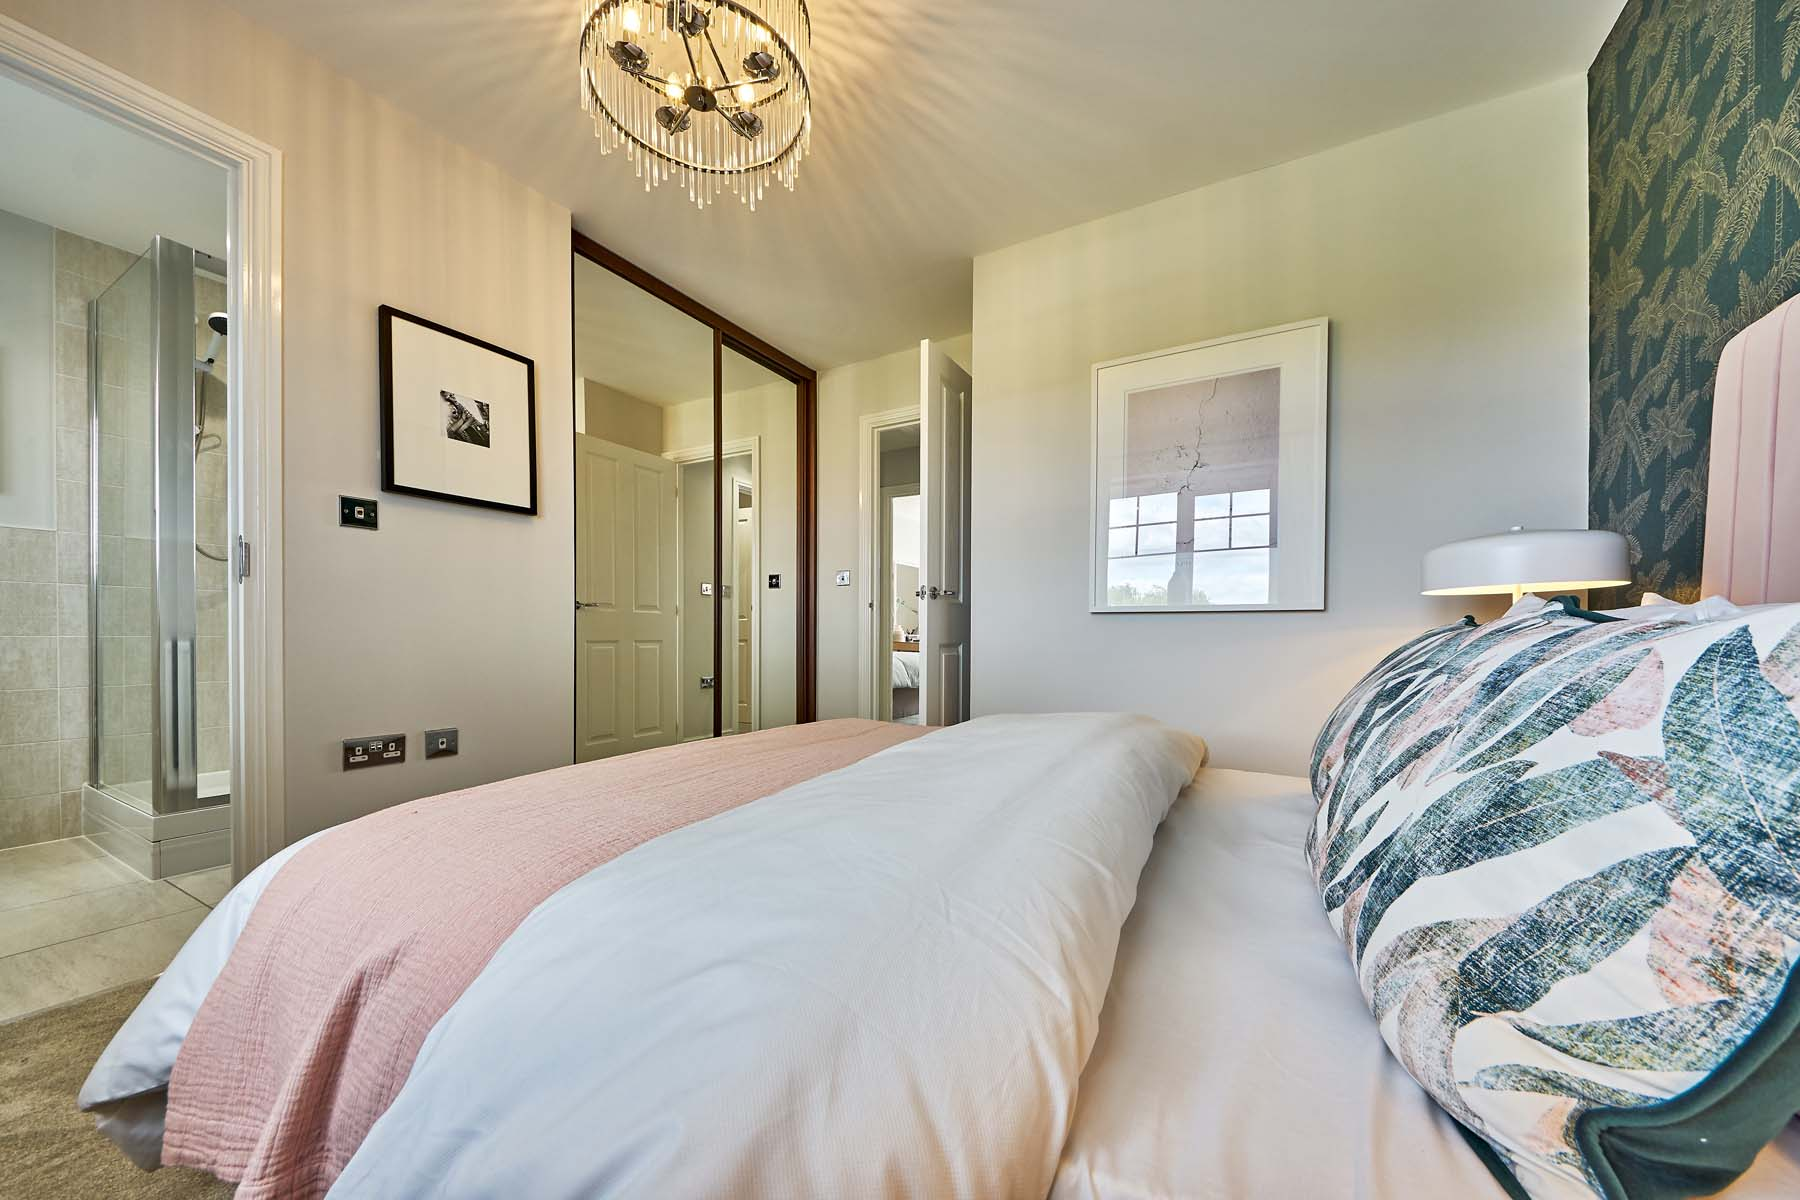 master bedoom showing ensuite - Catesby-Gosford-SH-photography-Aug19-5018